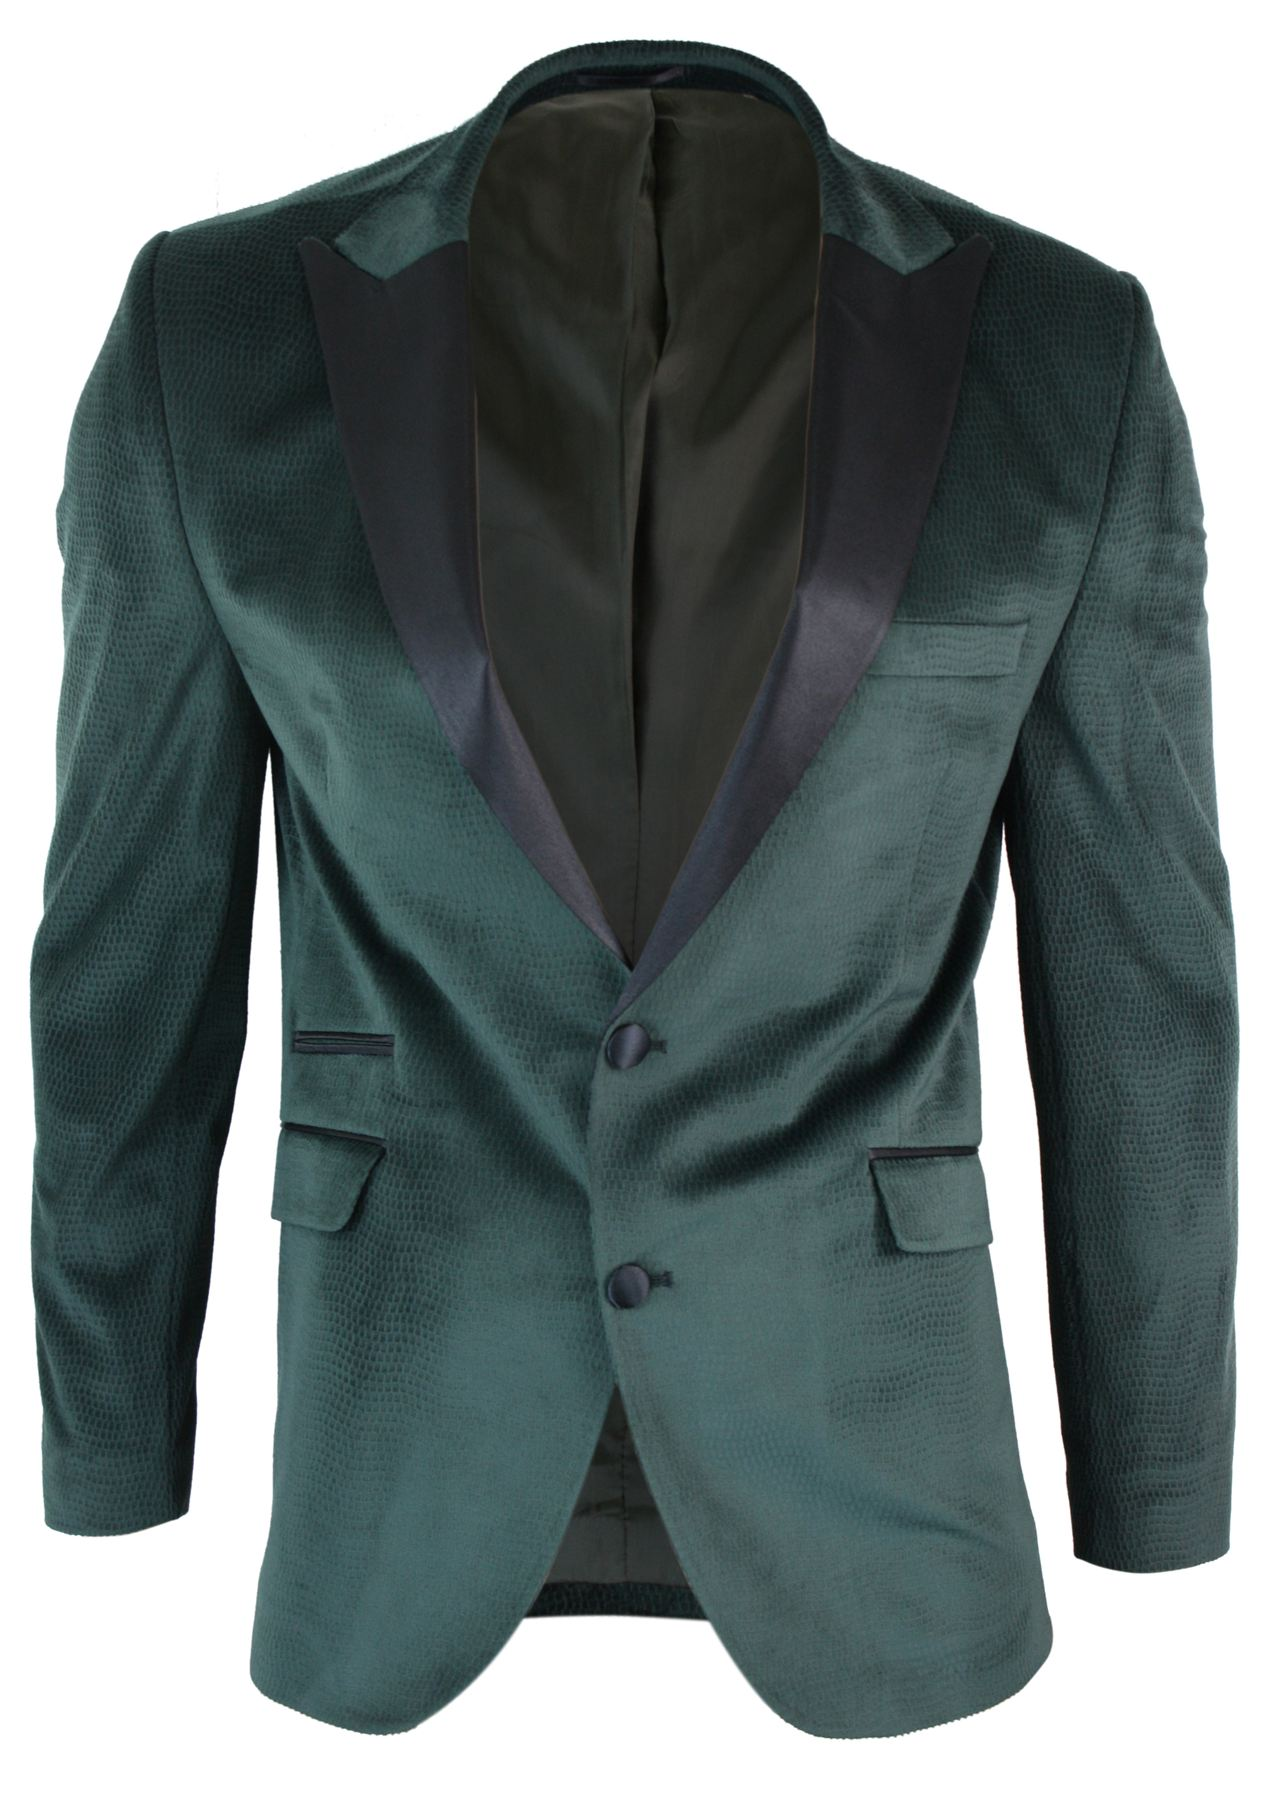 ALSO you will find more relatd Velvet Tuxedo Jacket such as Men's Clothing & Accessories, Suits, Suit Jackets, Jackets are waiting for your selection. New Elegant Burgundy Velvet Groom Tuxedo Jacket Black Lapel Mens Blazer Slim Fit Suit Men Wedding Suits With Pants US $ - / piece Free Shipping. Orders (0) Shop Store.